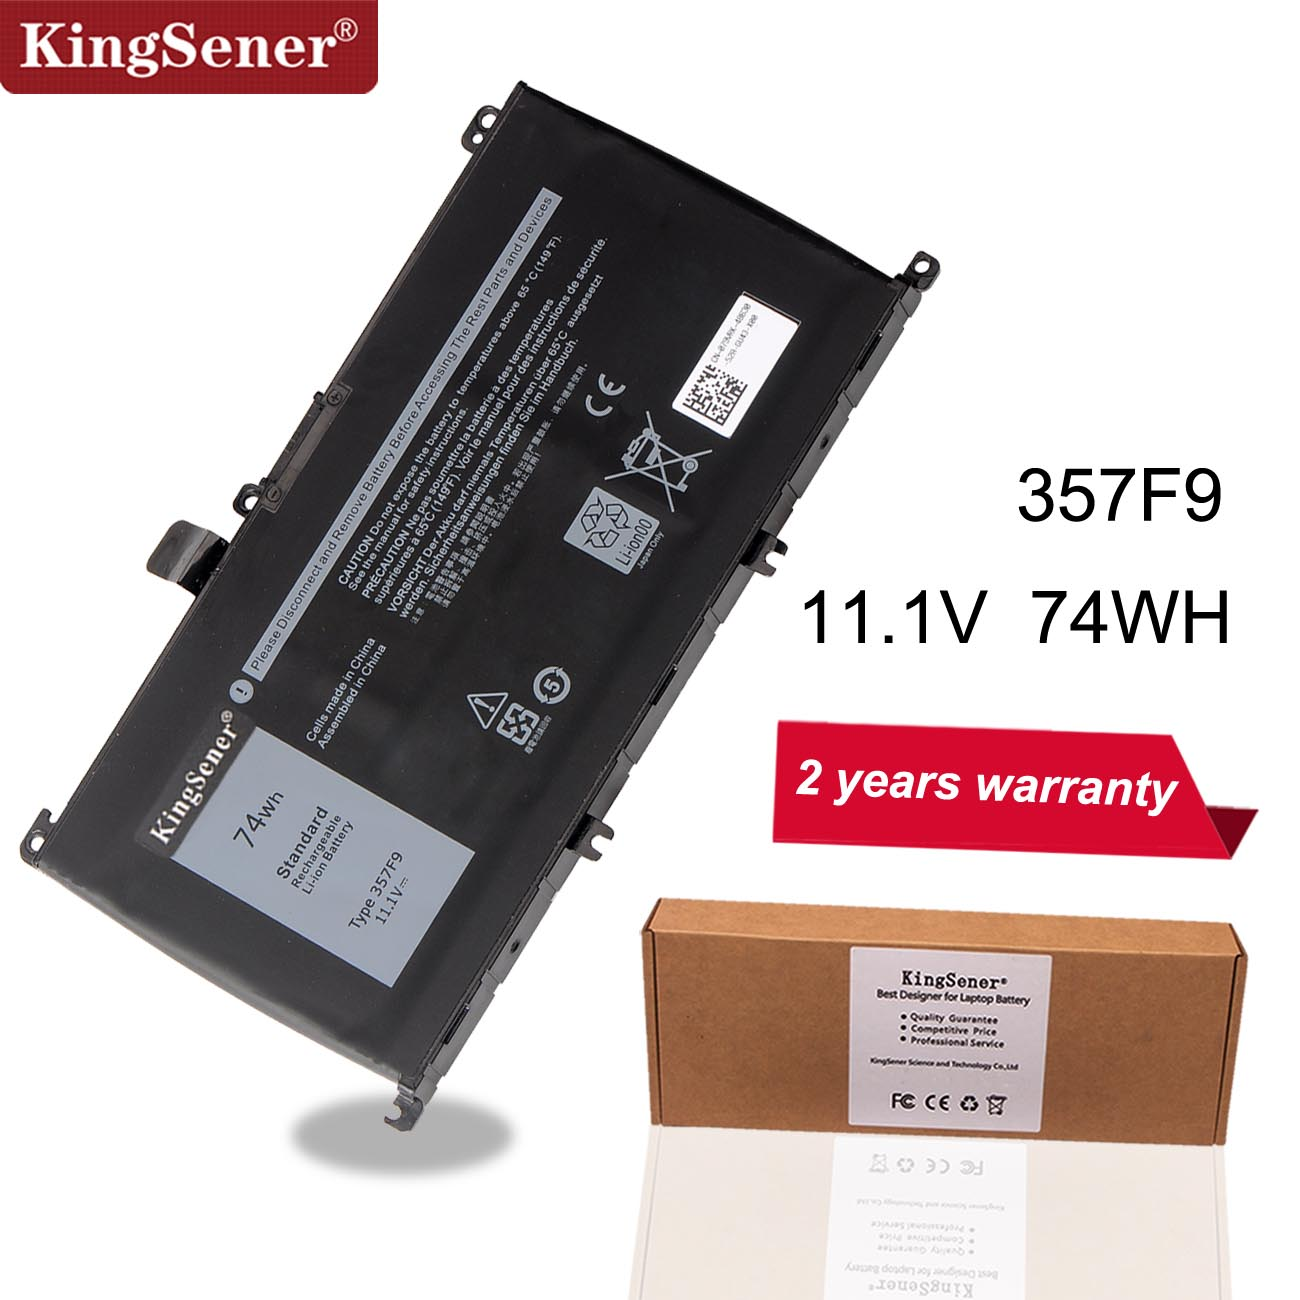 Kingsener 11.1V 74WH 357F9 Battery For Dell Inspiron 15 7000 7559 7557 7566 7567 5576 INS15PD 1548B INS15PD 1748B INS15PD 1848B